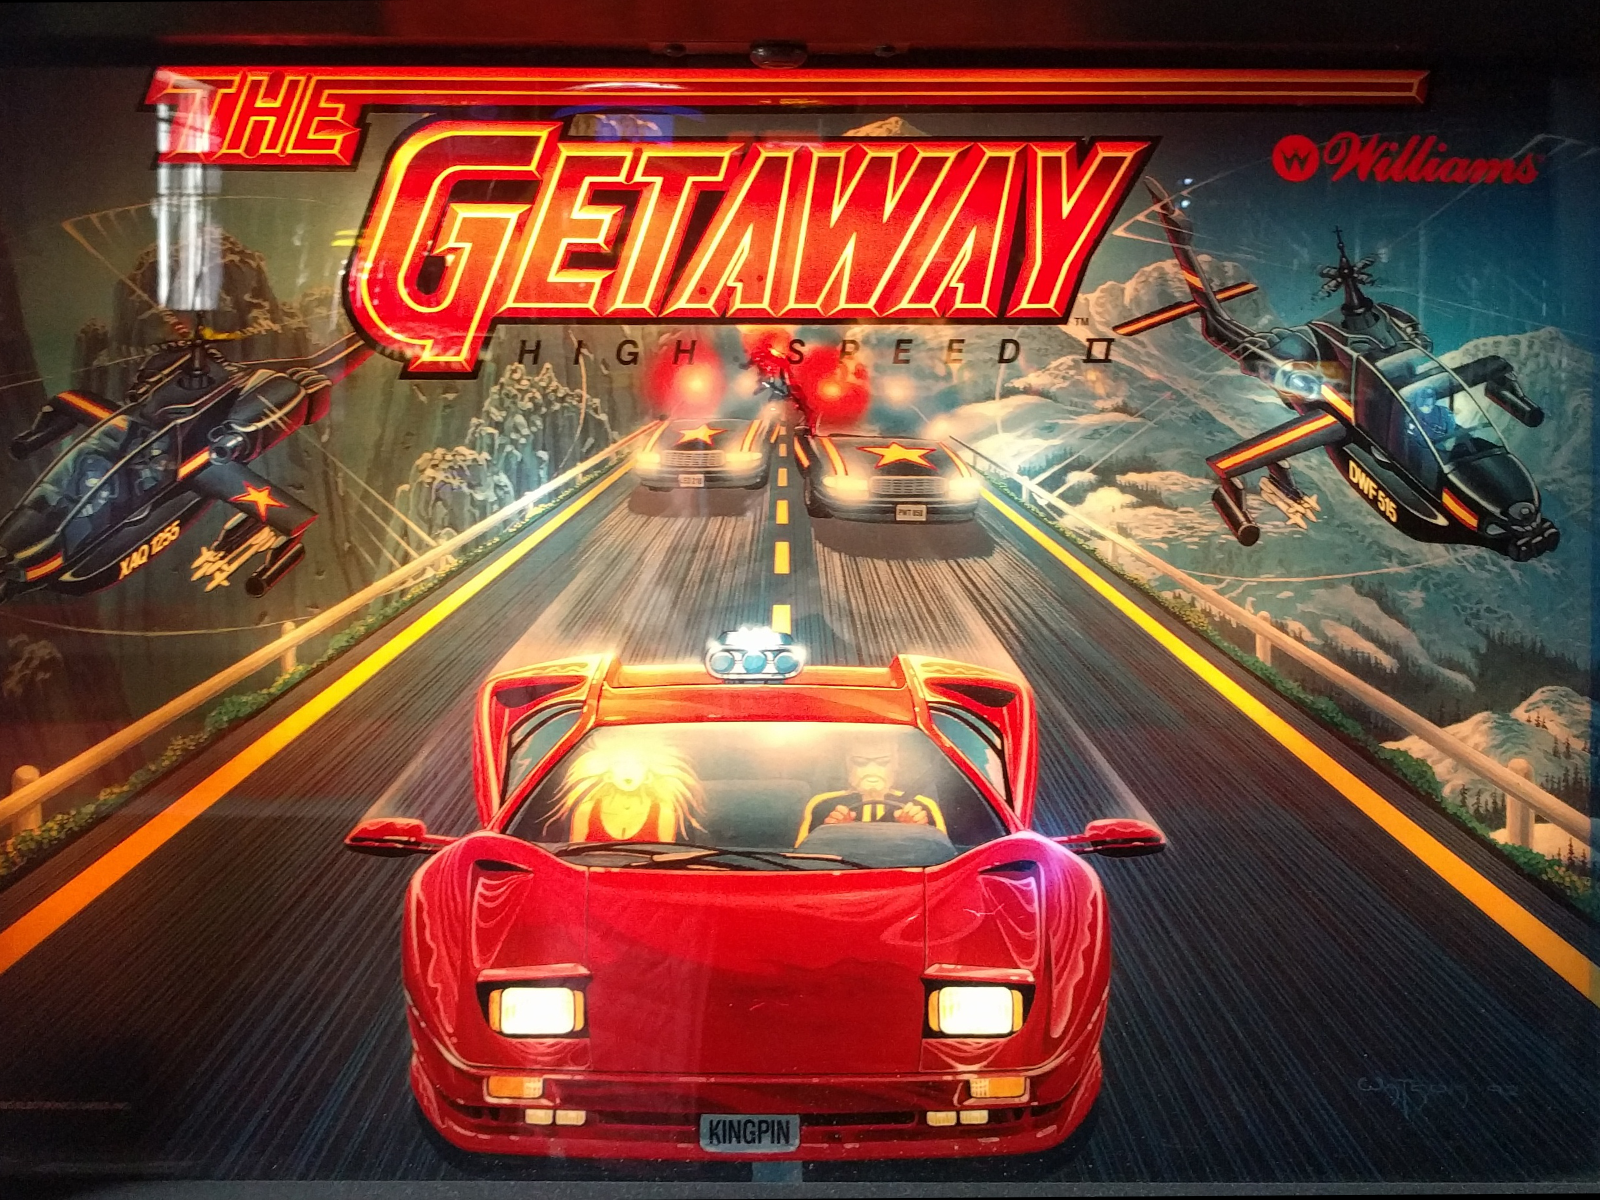 HIGH SPEED 2: THE GETAWAY